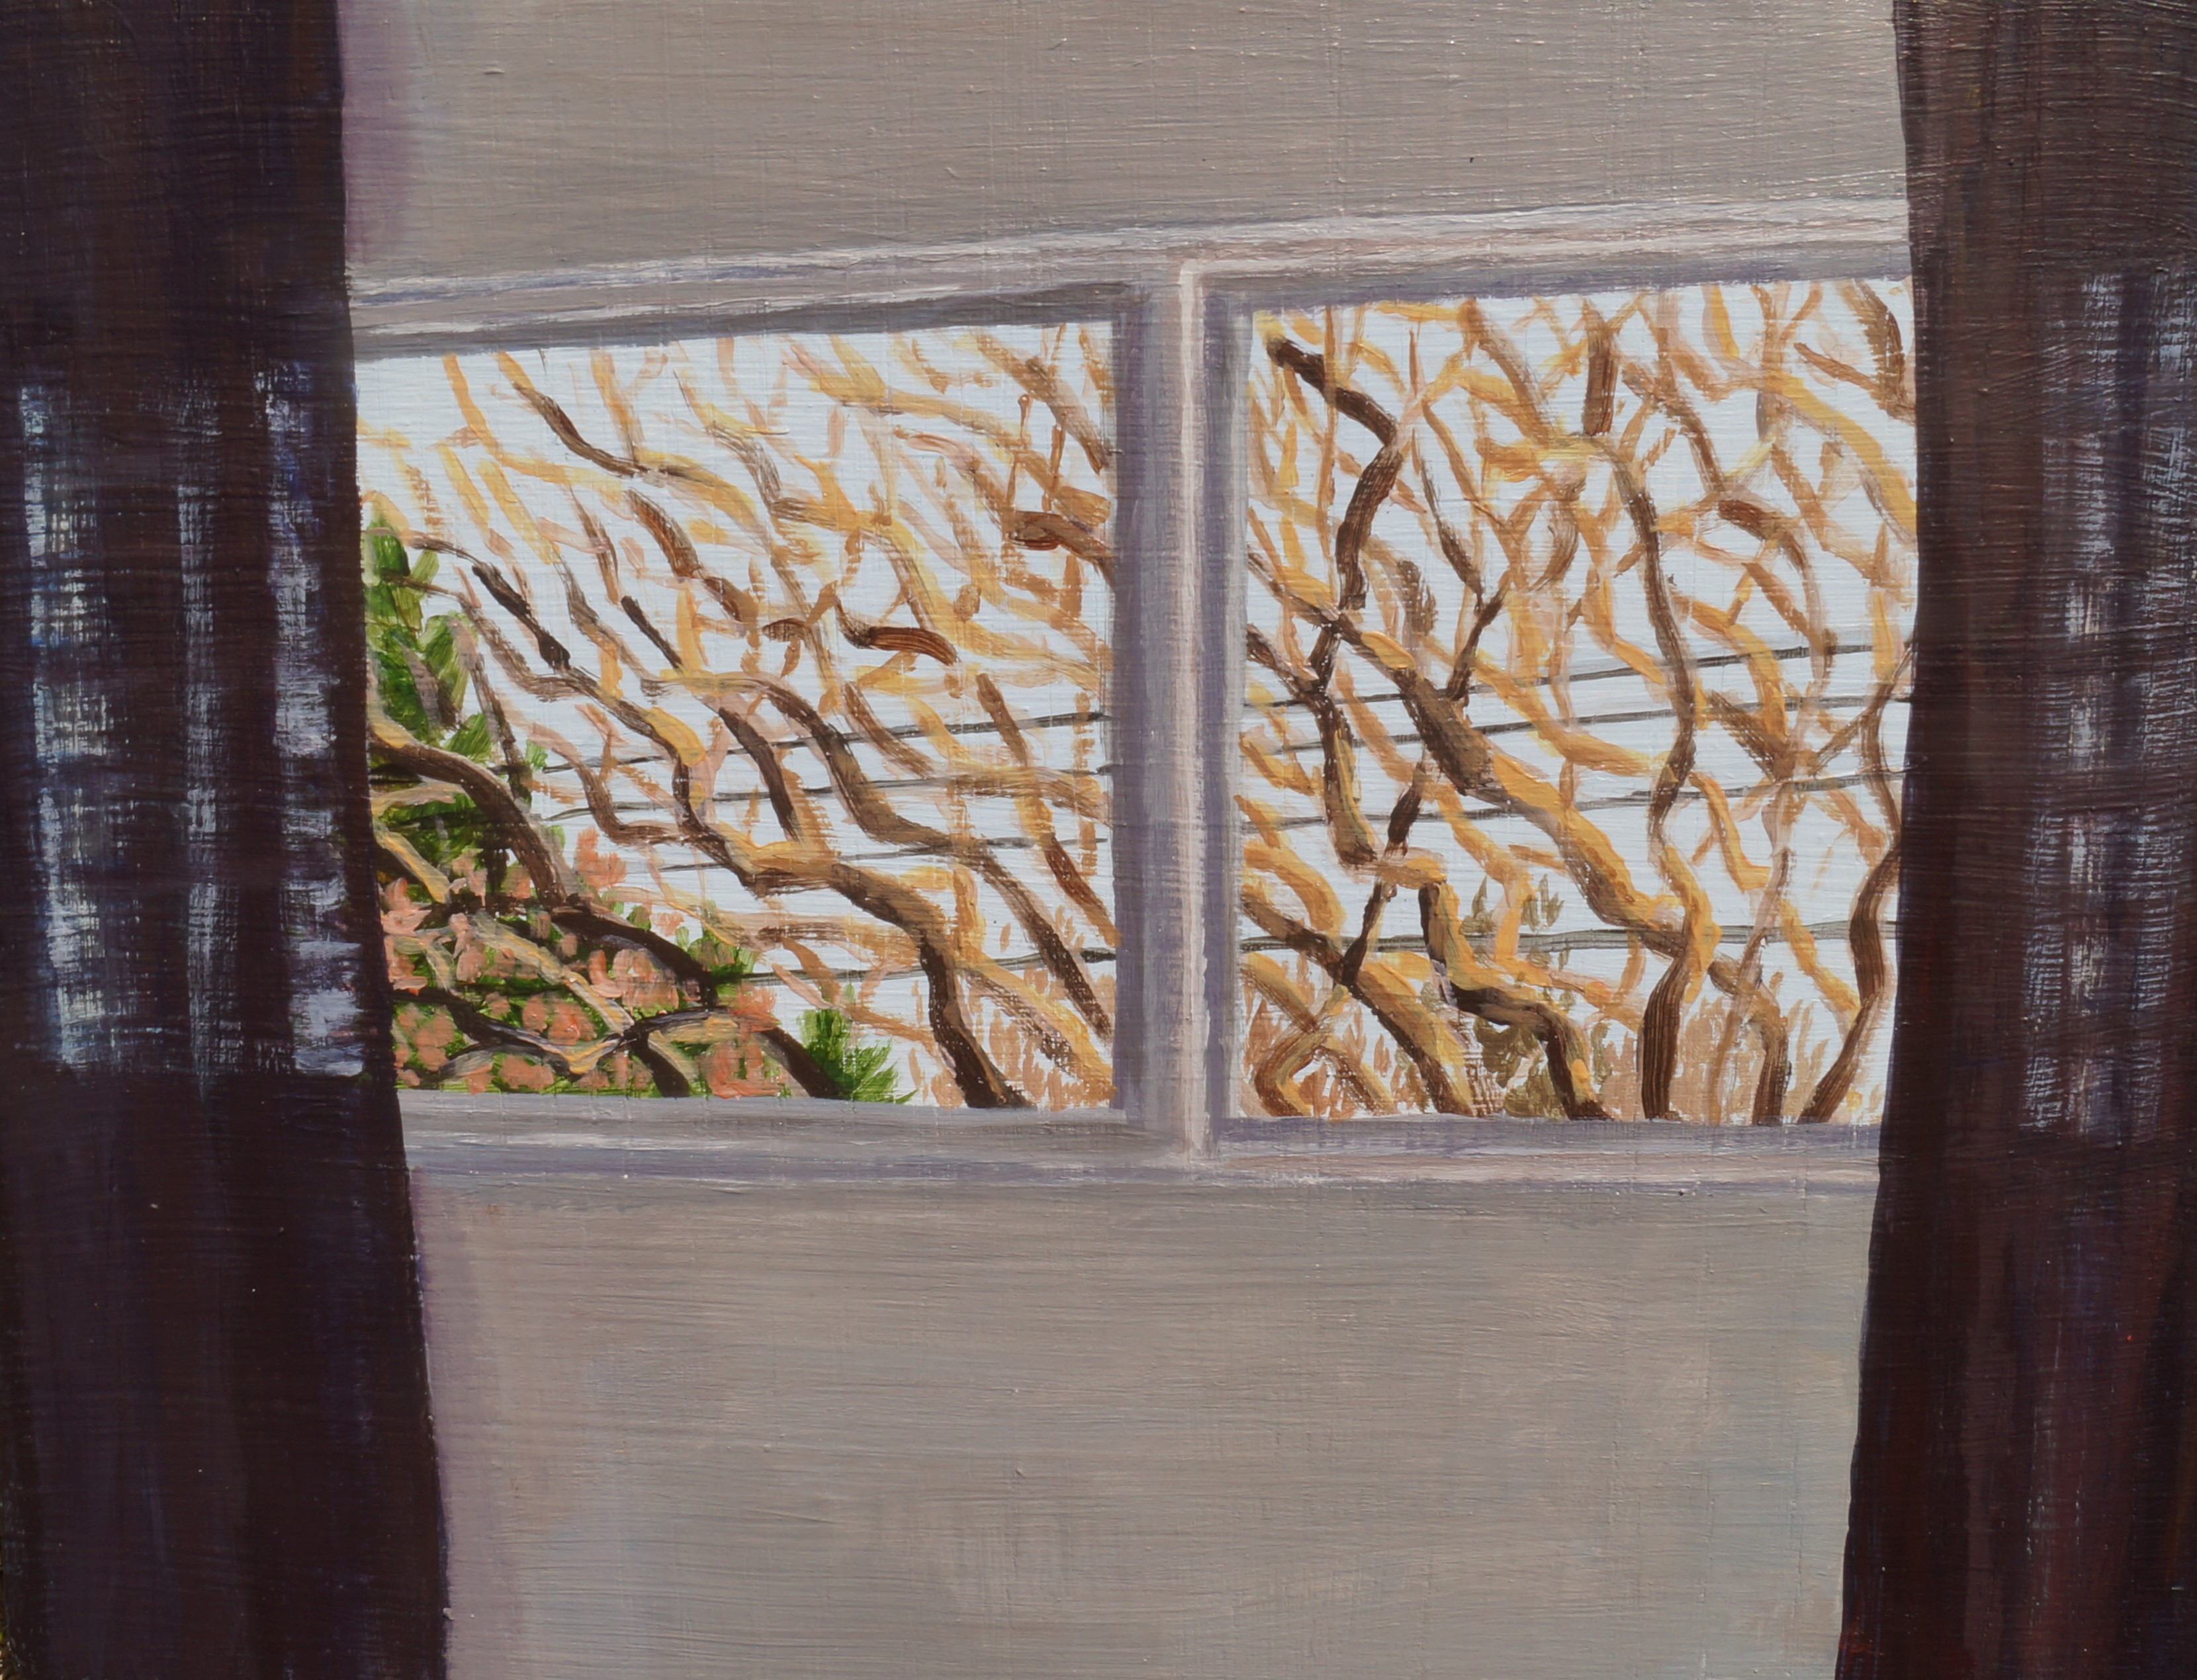 North facing window (with lilac tree), 2021, acrylic on panel, 9in. x 12in.